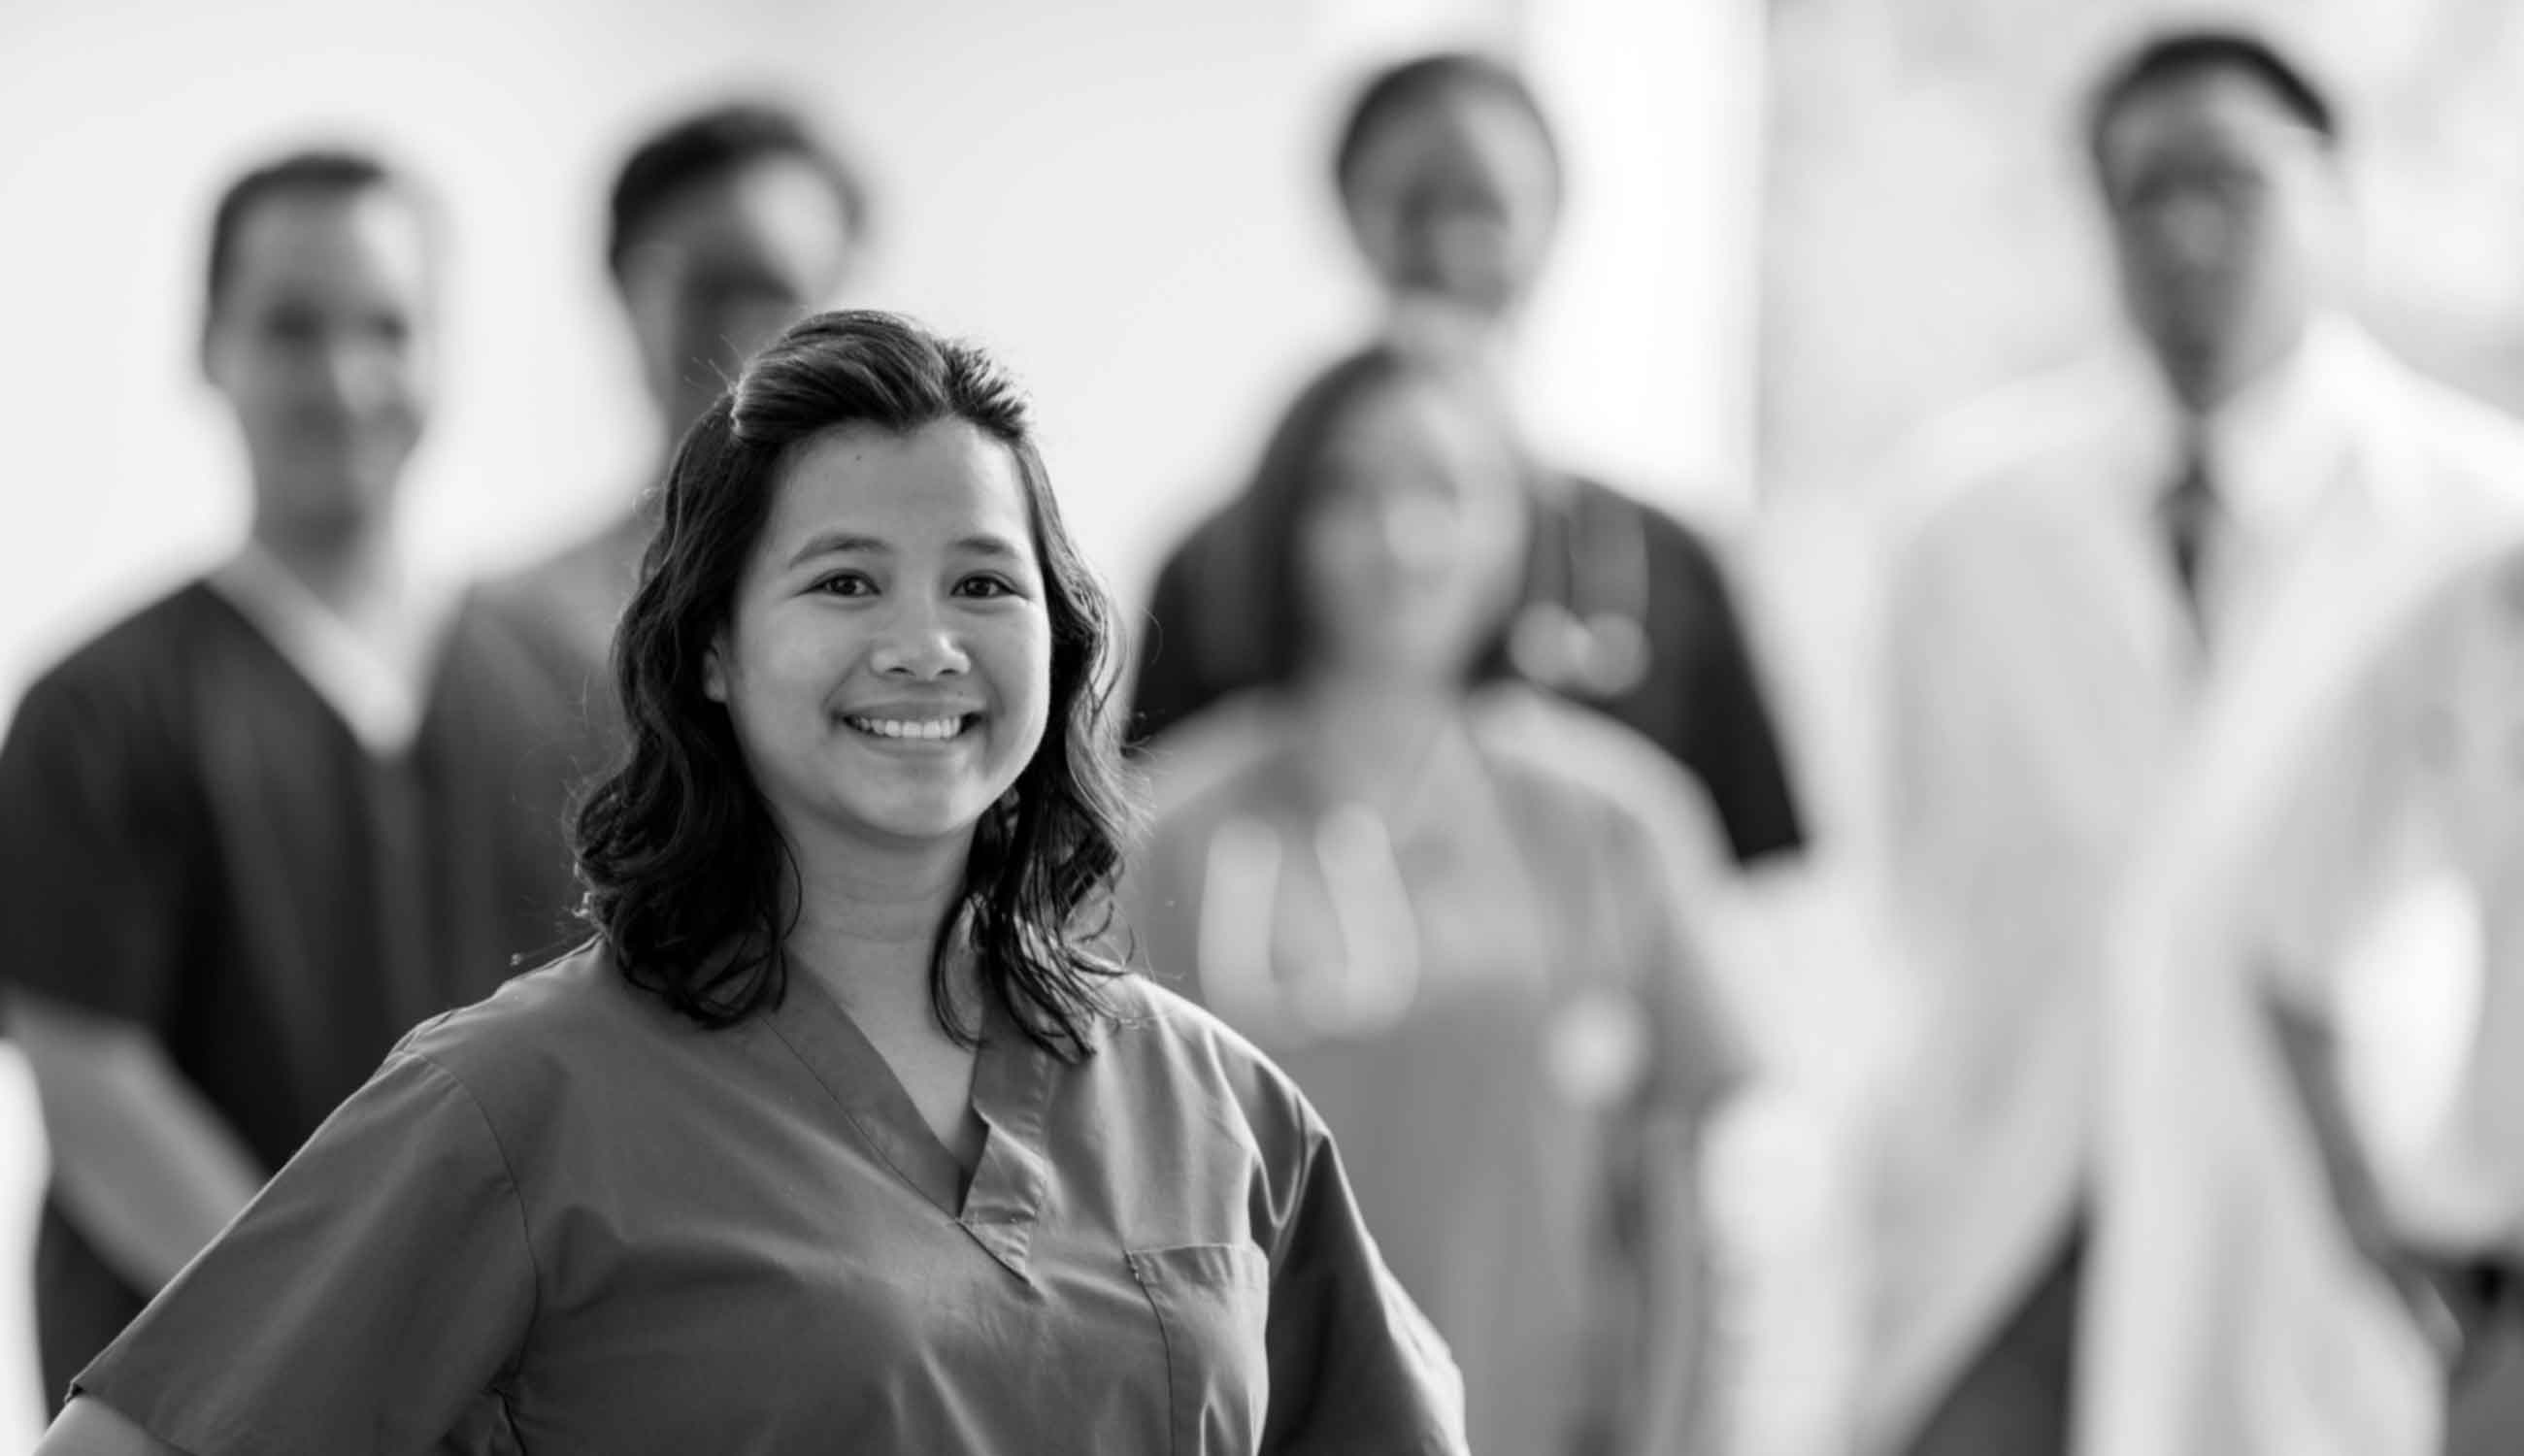 group-of-nurses-and-doctors_istock_000067654741_full